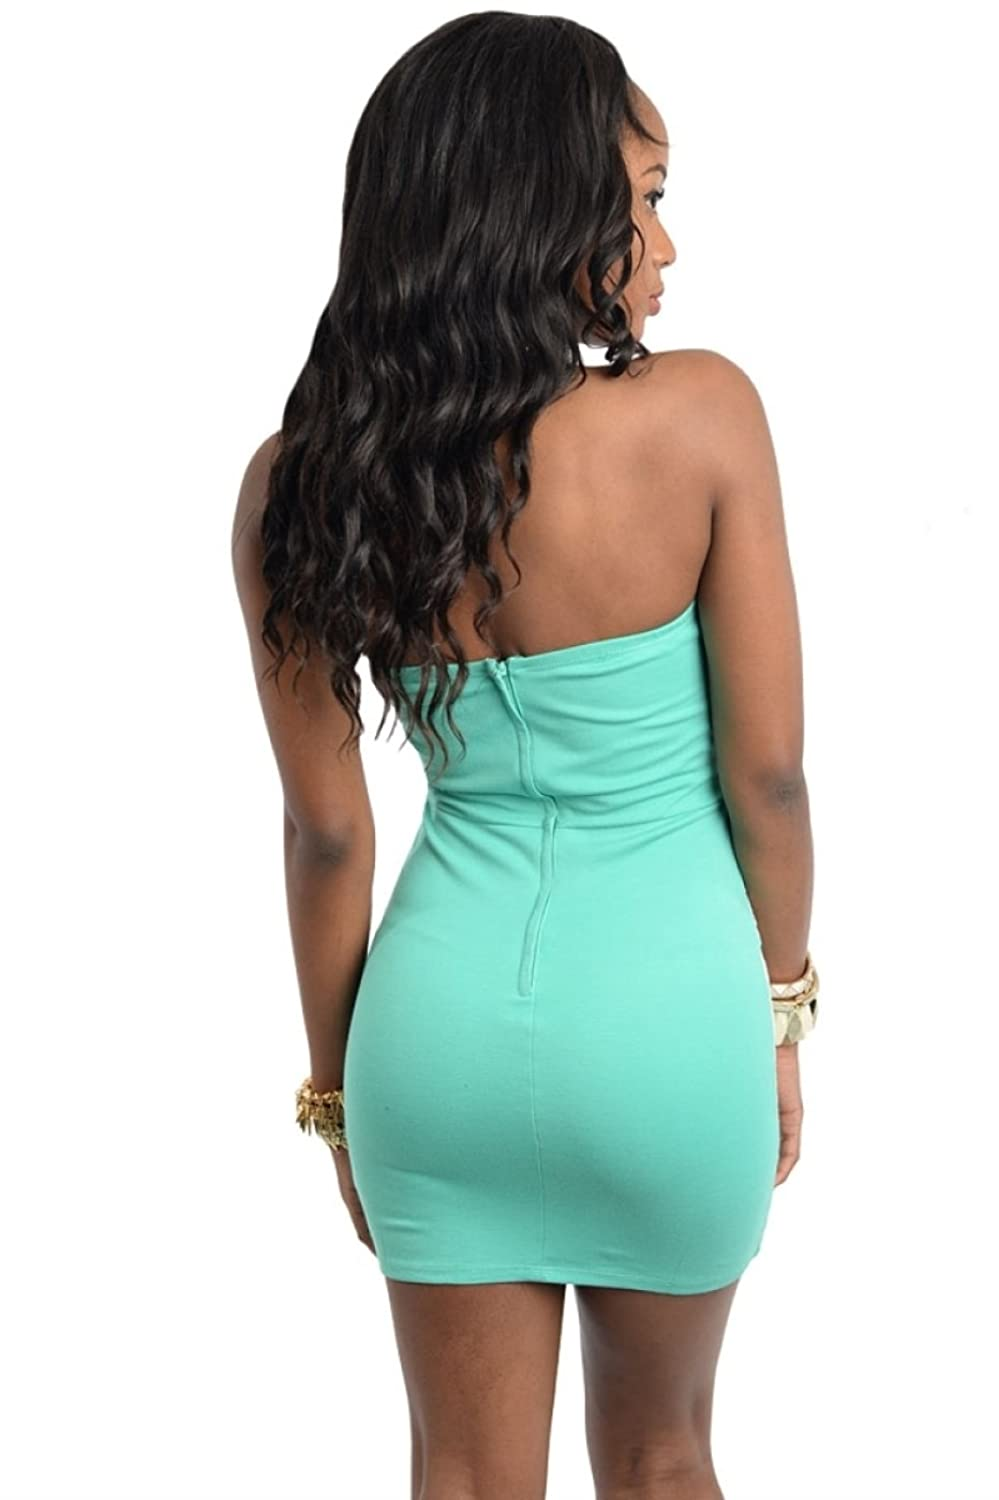 2LUV Women's Strapless Lace Front Bodycon Dress